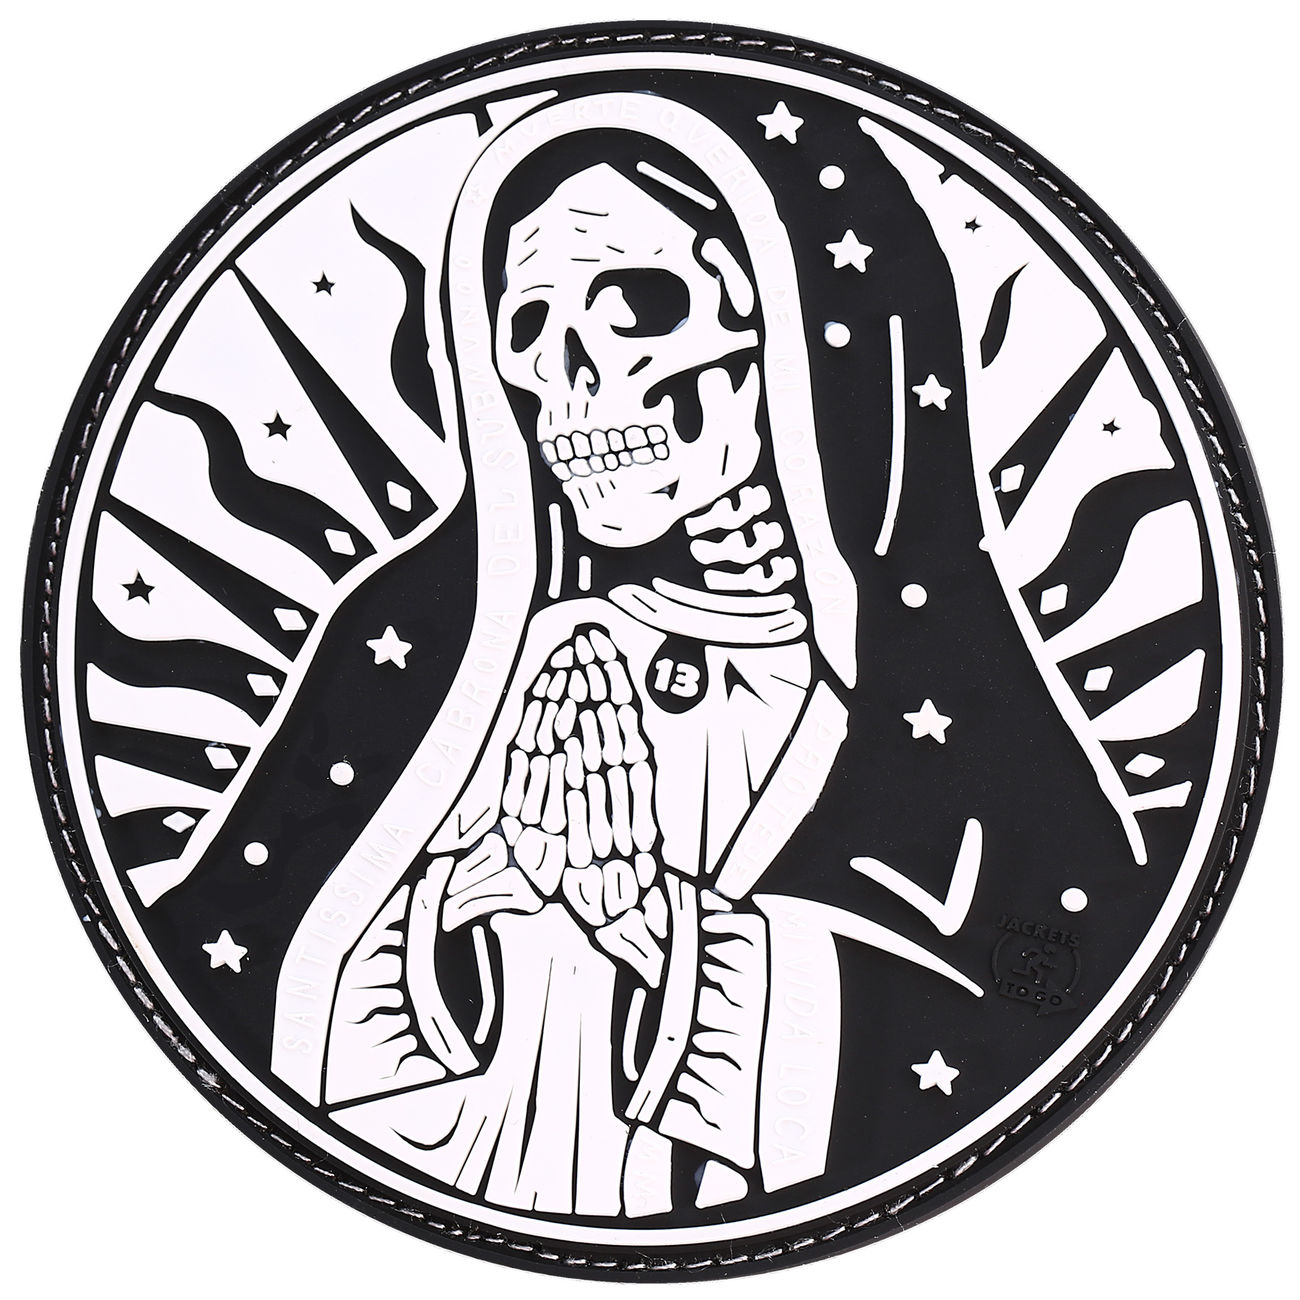 Jtg 3d Rubber Patch Santa Muerte Patch Swat Günstig Kaufen Kotte